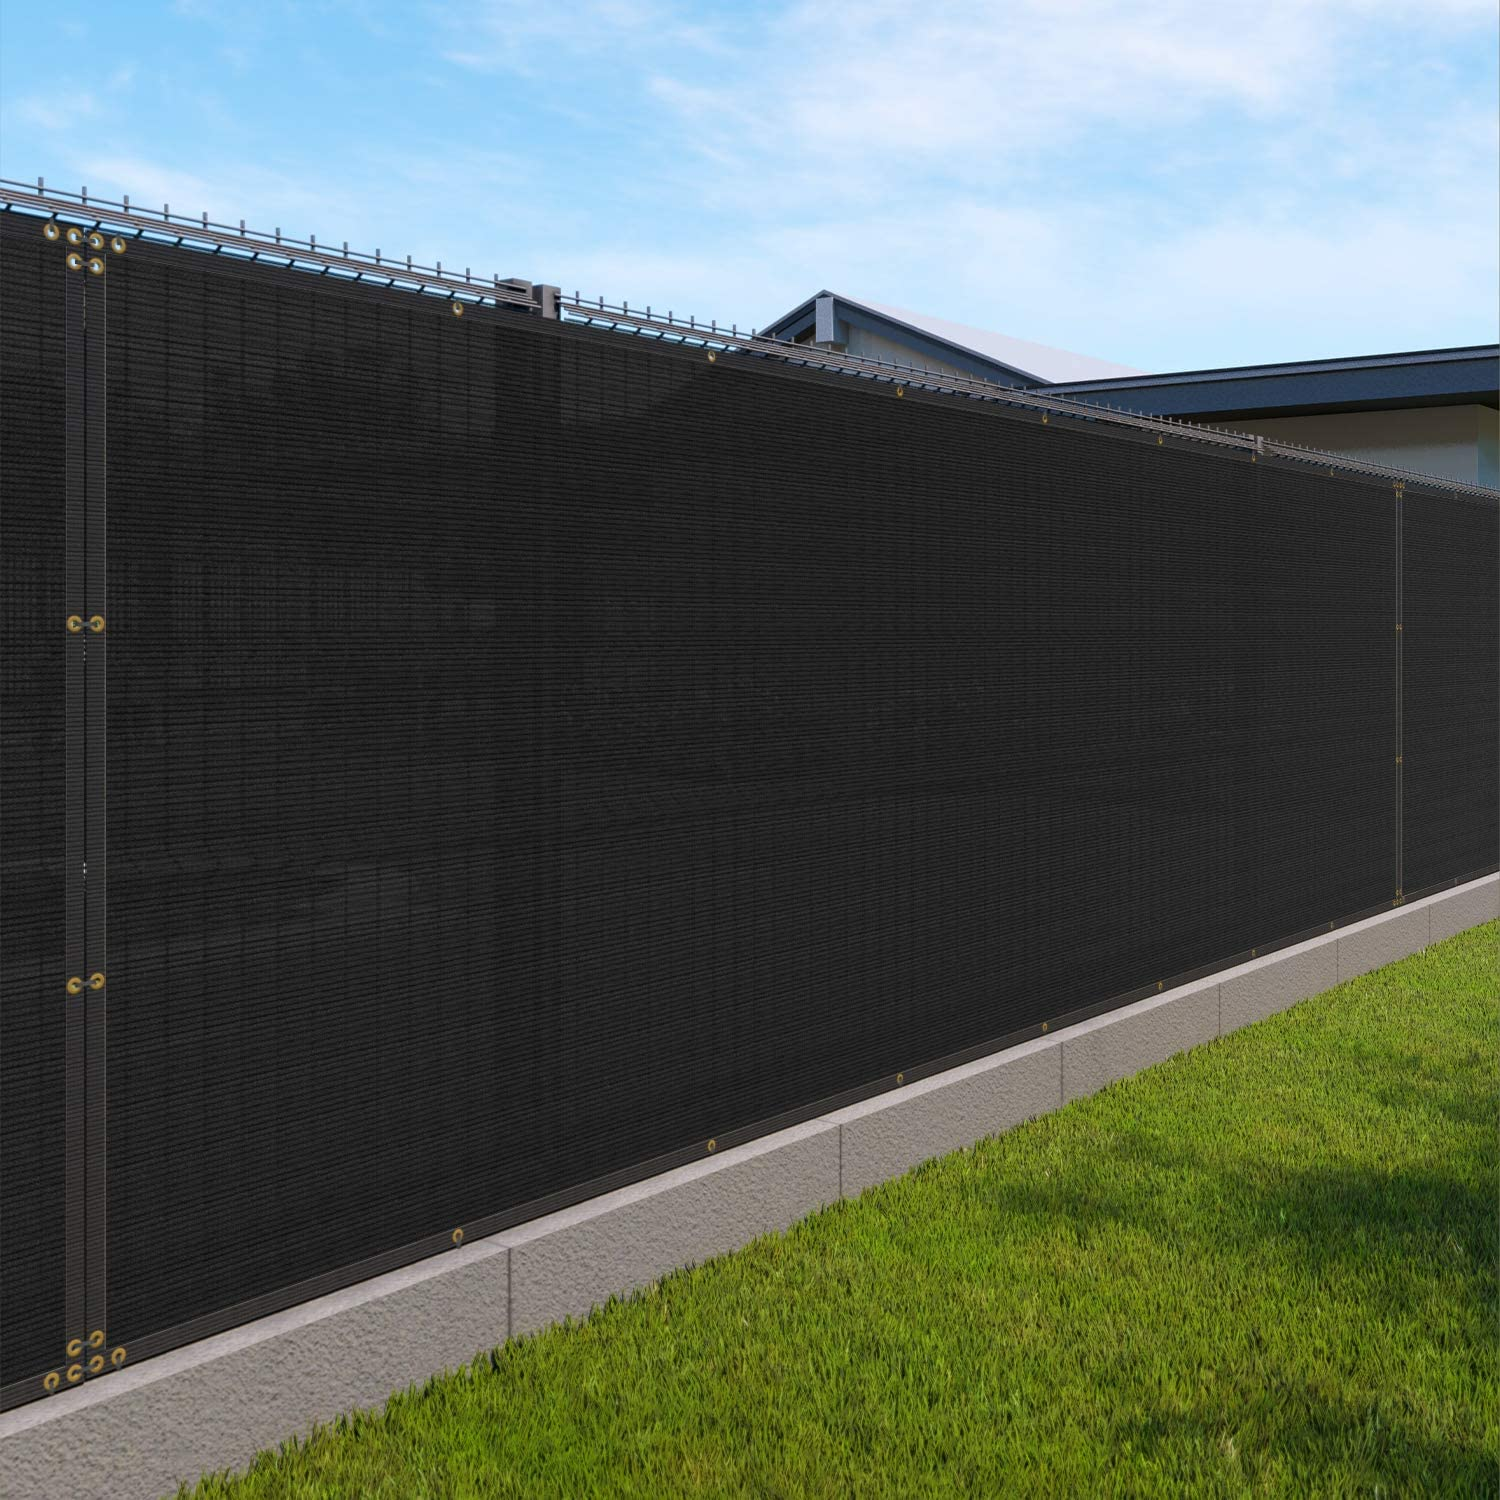 6' x 5' Privacy Fence Screen In a New popularity popularity in Blo 85% Brass Grommet with Black